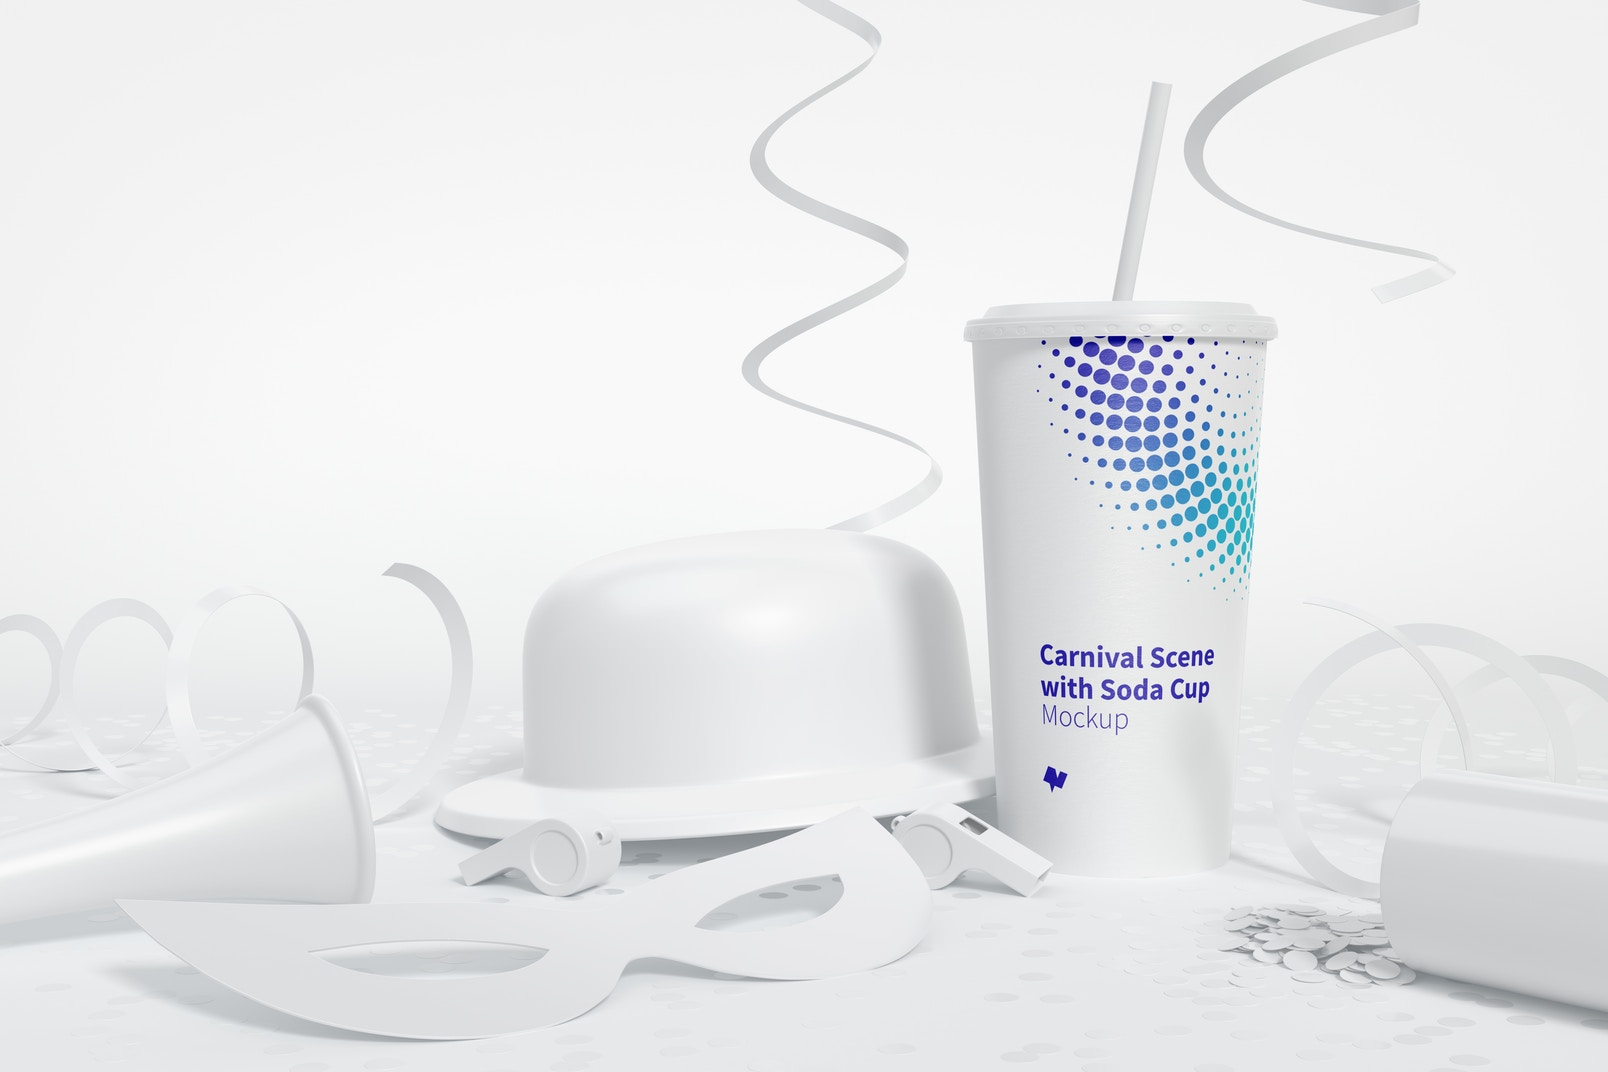 Carnival Scene with Soda Cup Mockup, Front View